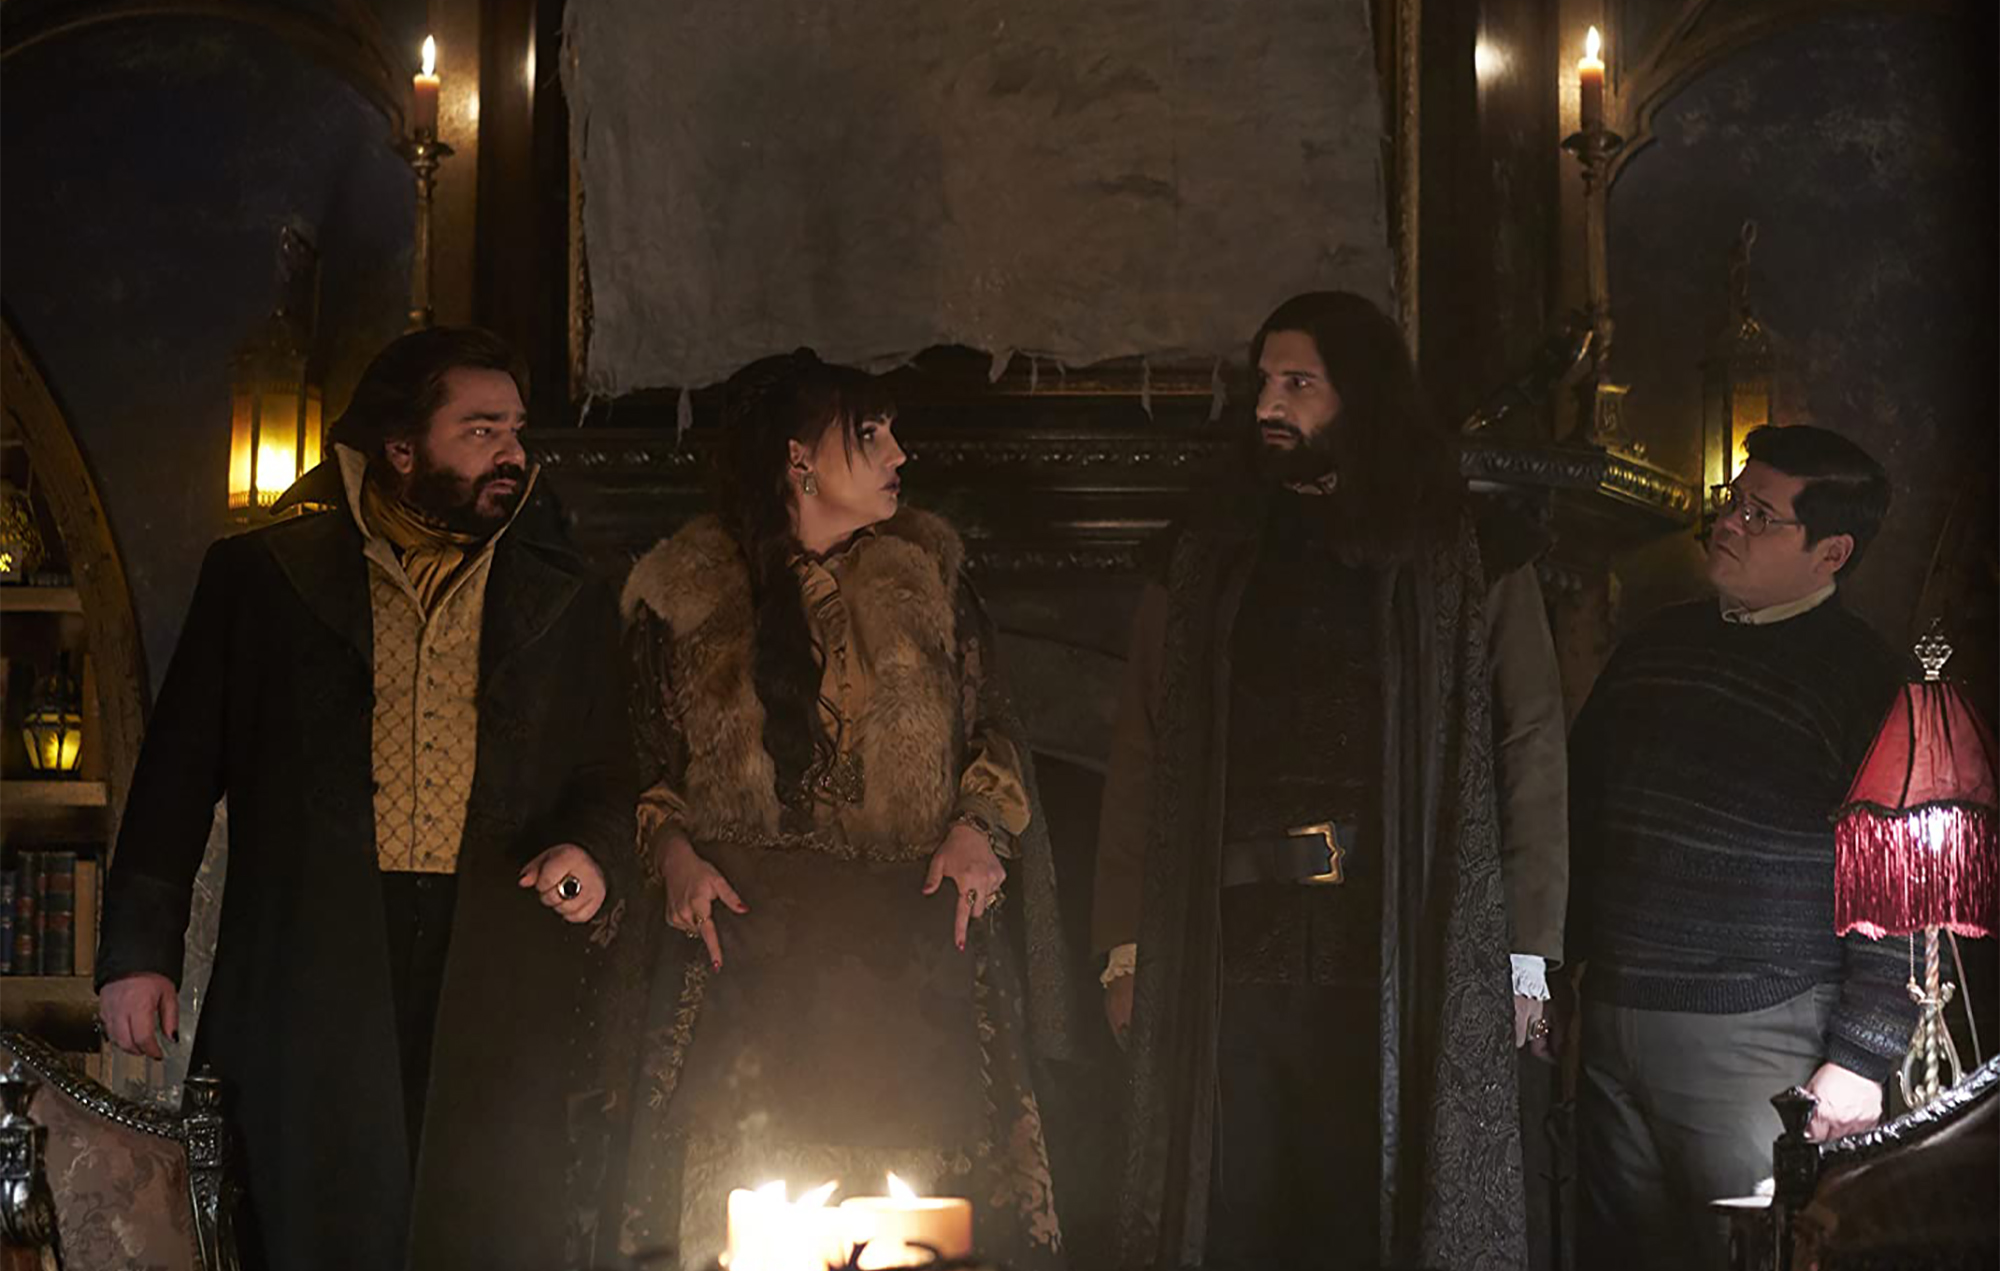 'What We Do In The Shadows' confirmed for a third season